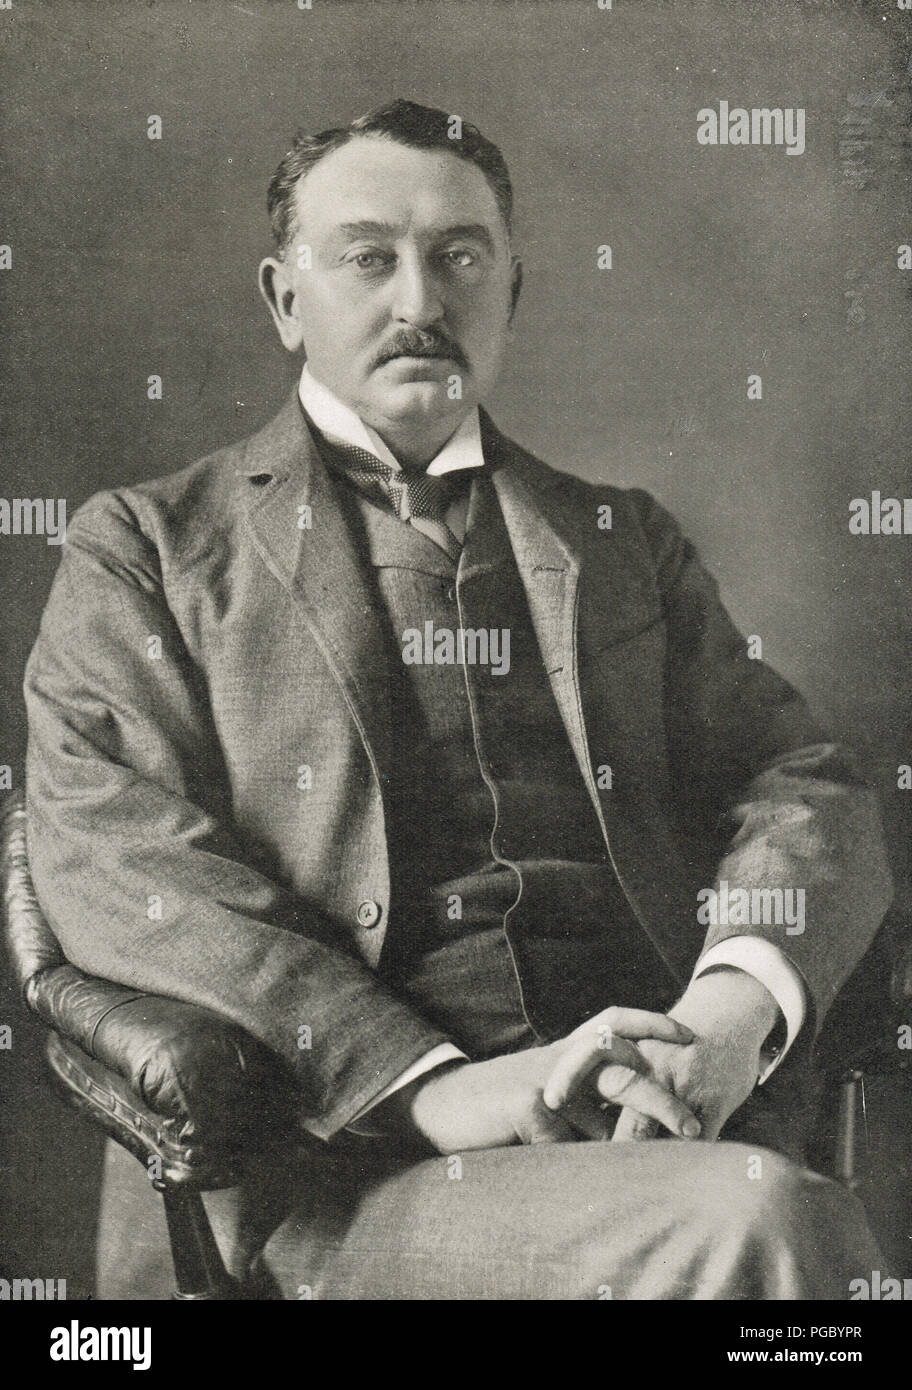 Cecil Rhodes, 7th Prime Minister of the Cape Colony, founded southern African territory of Rhodesia, present day Zimbabwe and Zambia - Stock Image